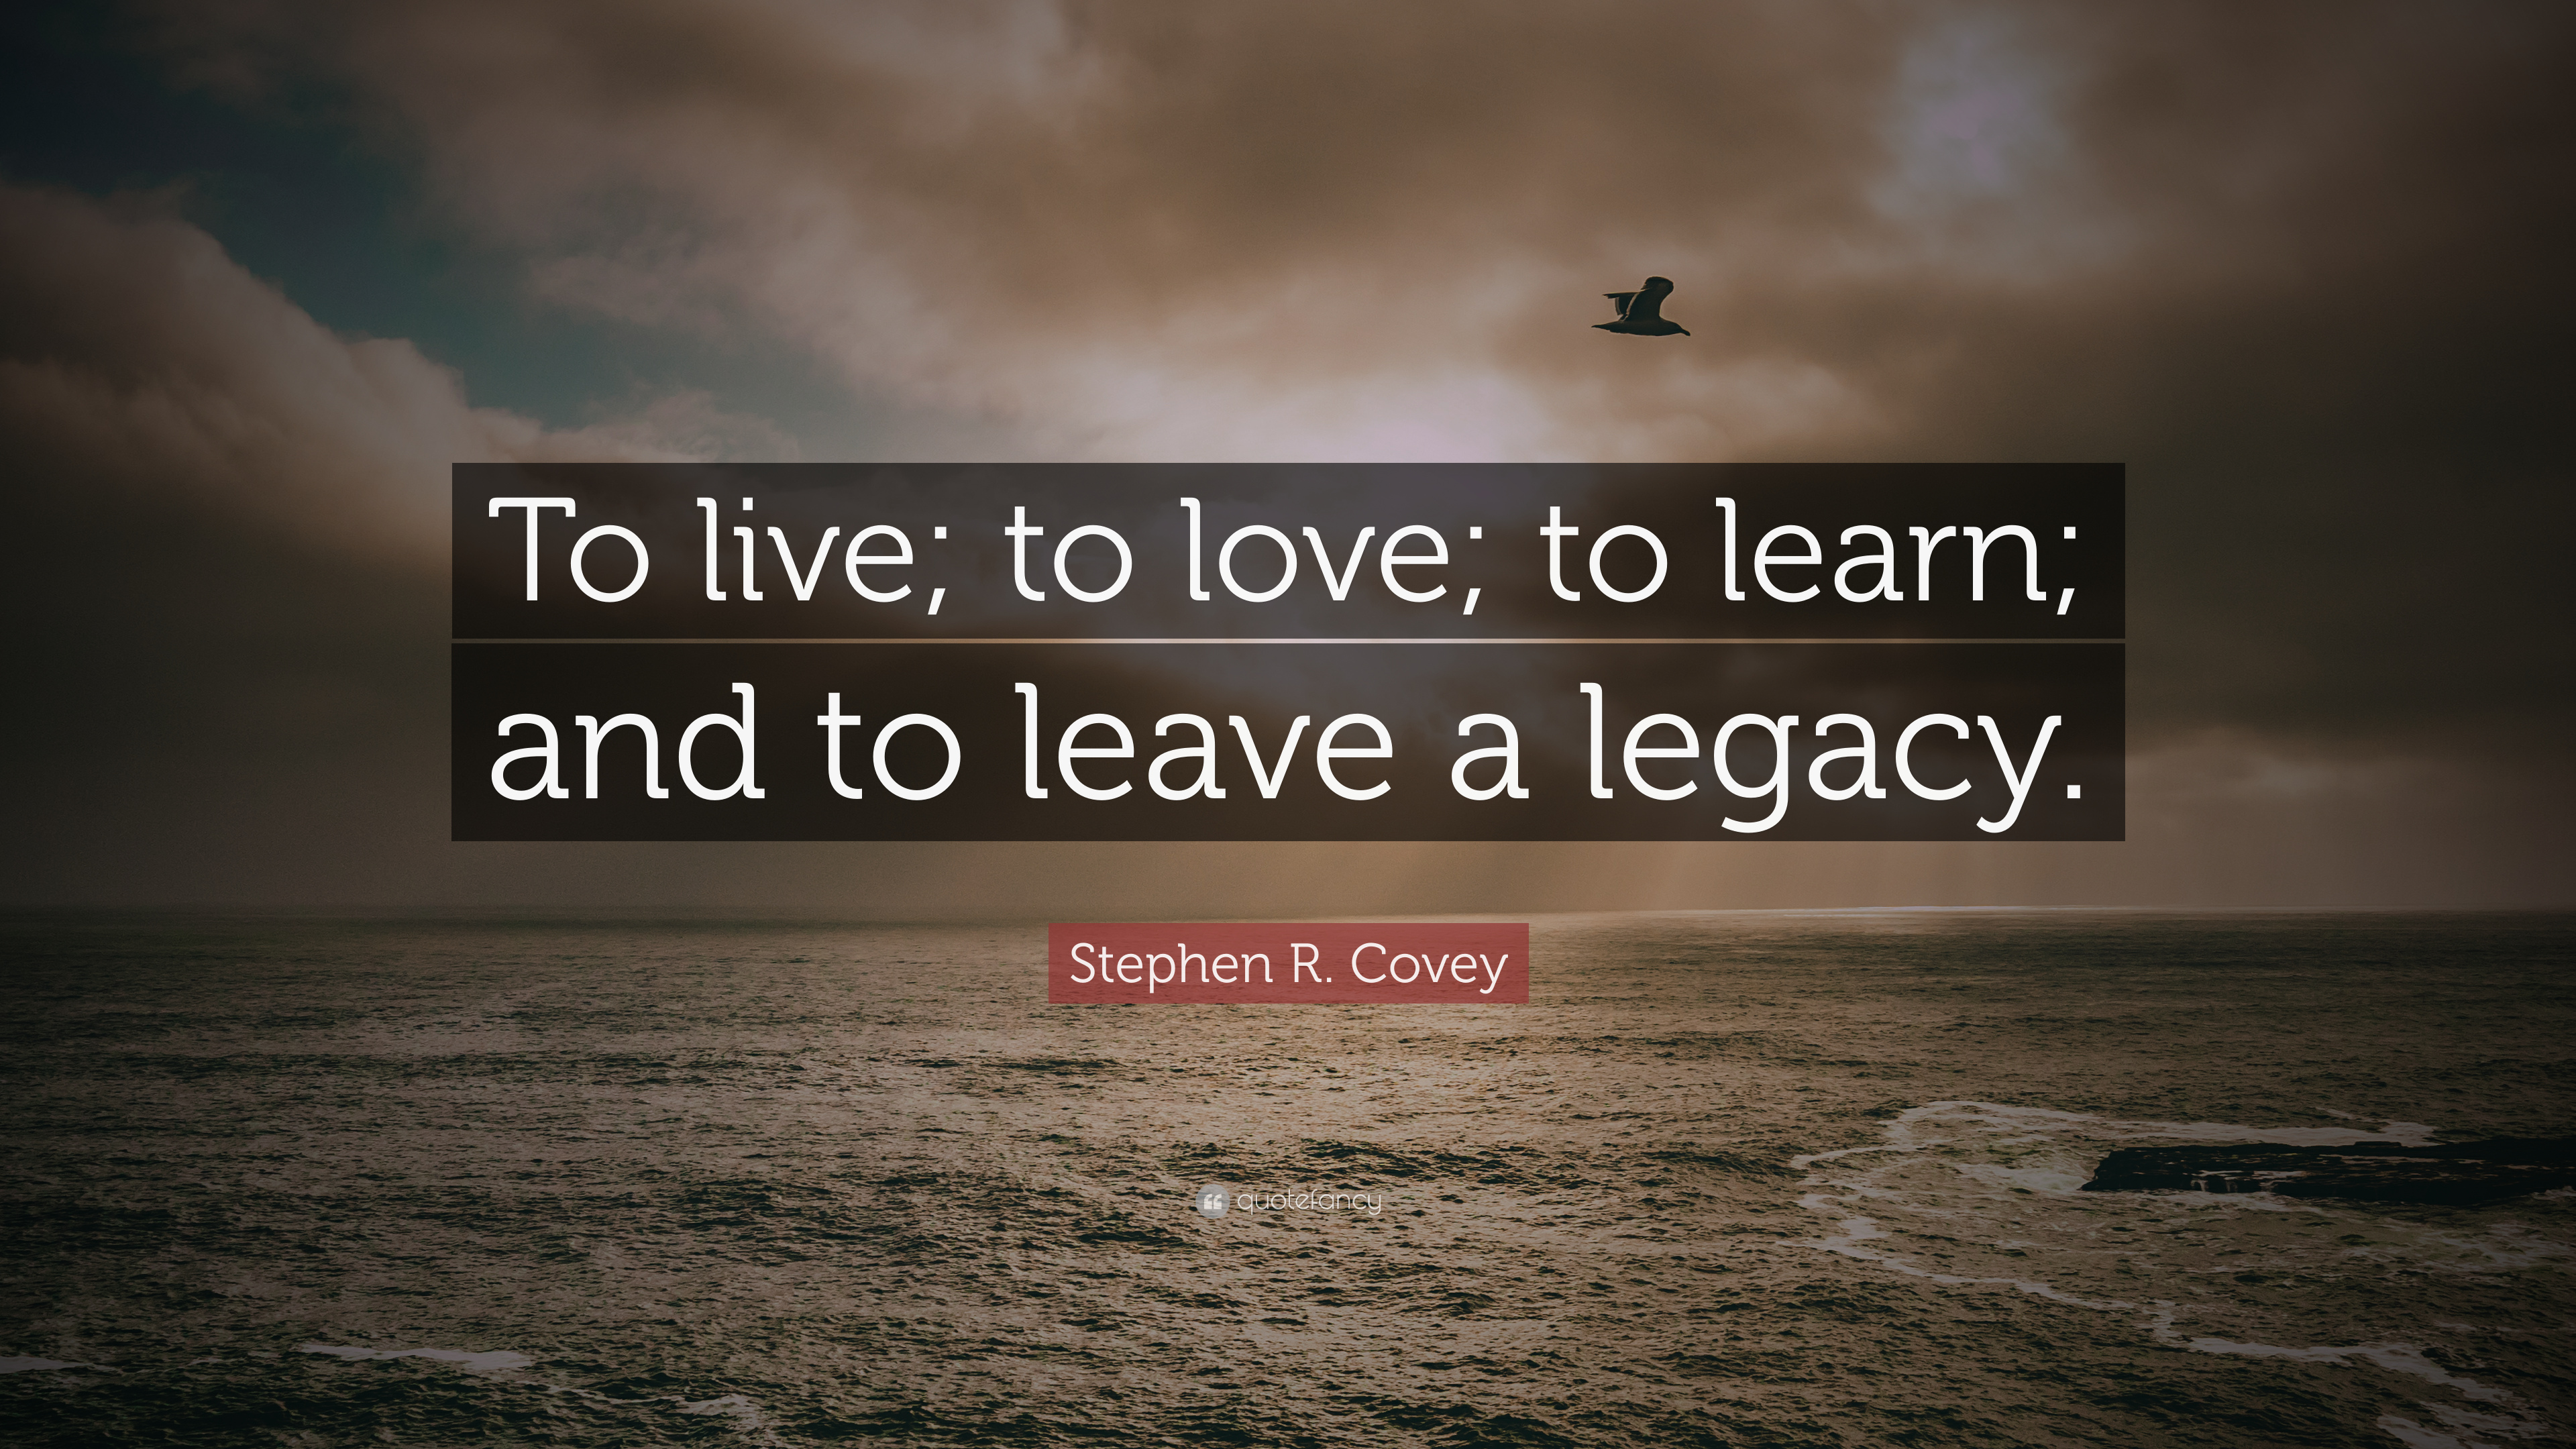 Live a Legacy, Leave a Legacy: Choosing to live with hope ...